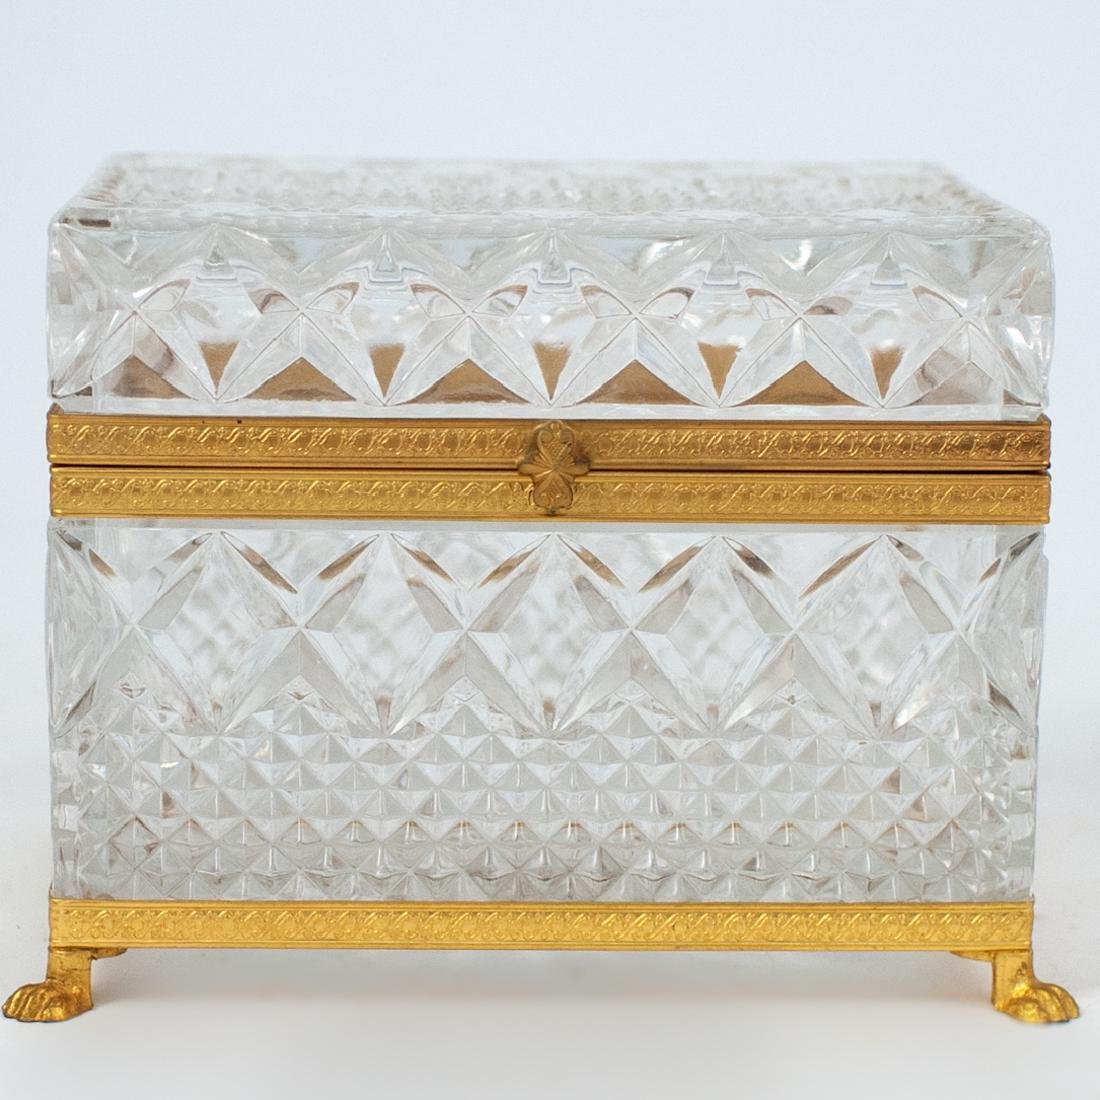 Antique Cut Crystal and Gilt Bronze Lidded Box